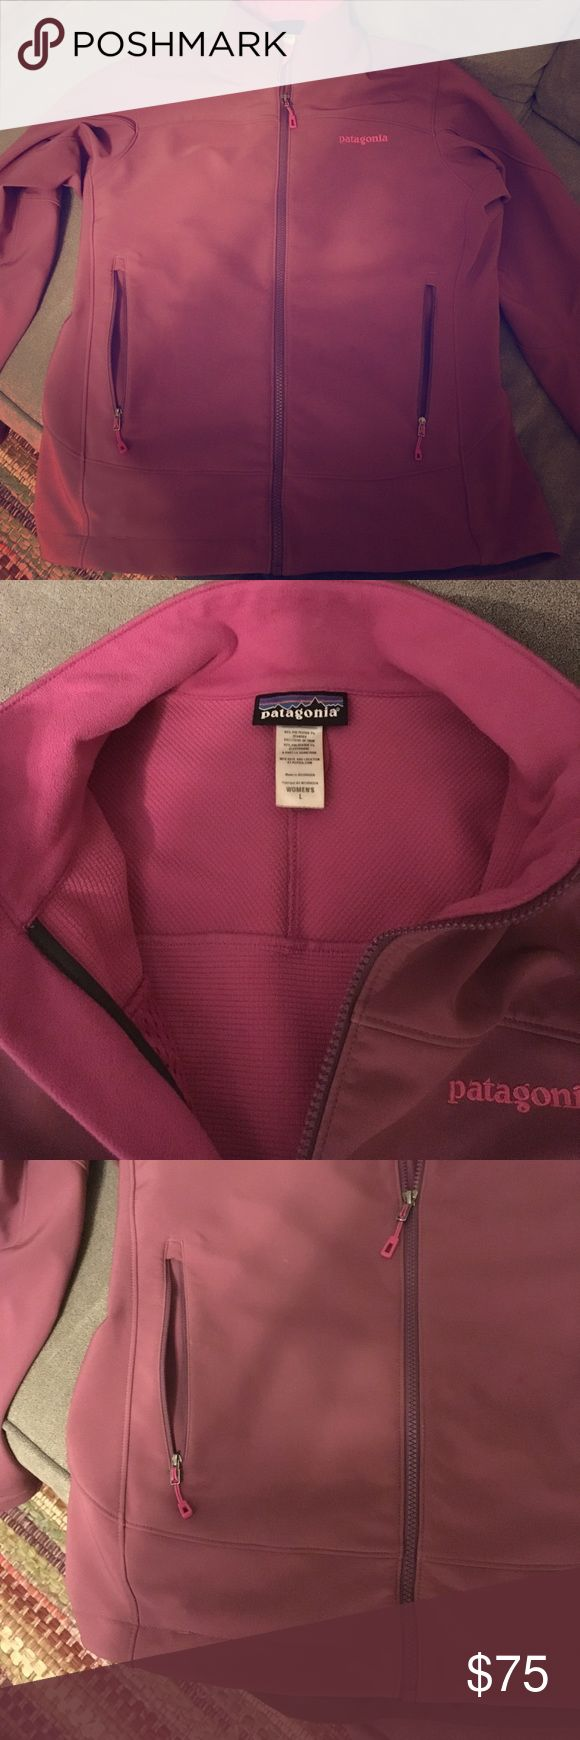 Patagonia purple shell jacket, large If you know Patagonia, you know this stuff is built to last! This jacket is probably warm enough for winter, but I mostly used it for cold fall days. Wind proof and water repellant exterior lined with polartec fleece - soft but not bulky at all. Wrist bands are adjustable, hidden inner pocket. Great for keeping the cold off day to day or for outdoor activities. Muted purple color lined with pink. Excellent used condition. I bought this from REI, but it's…